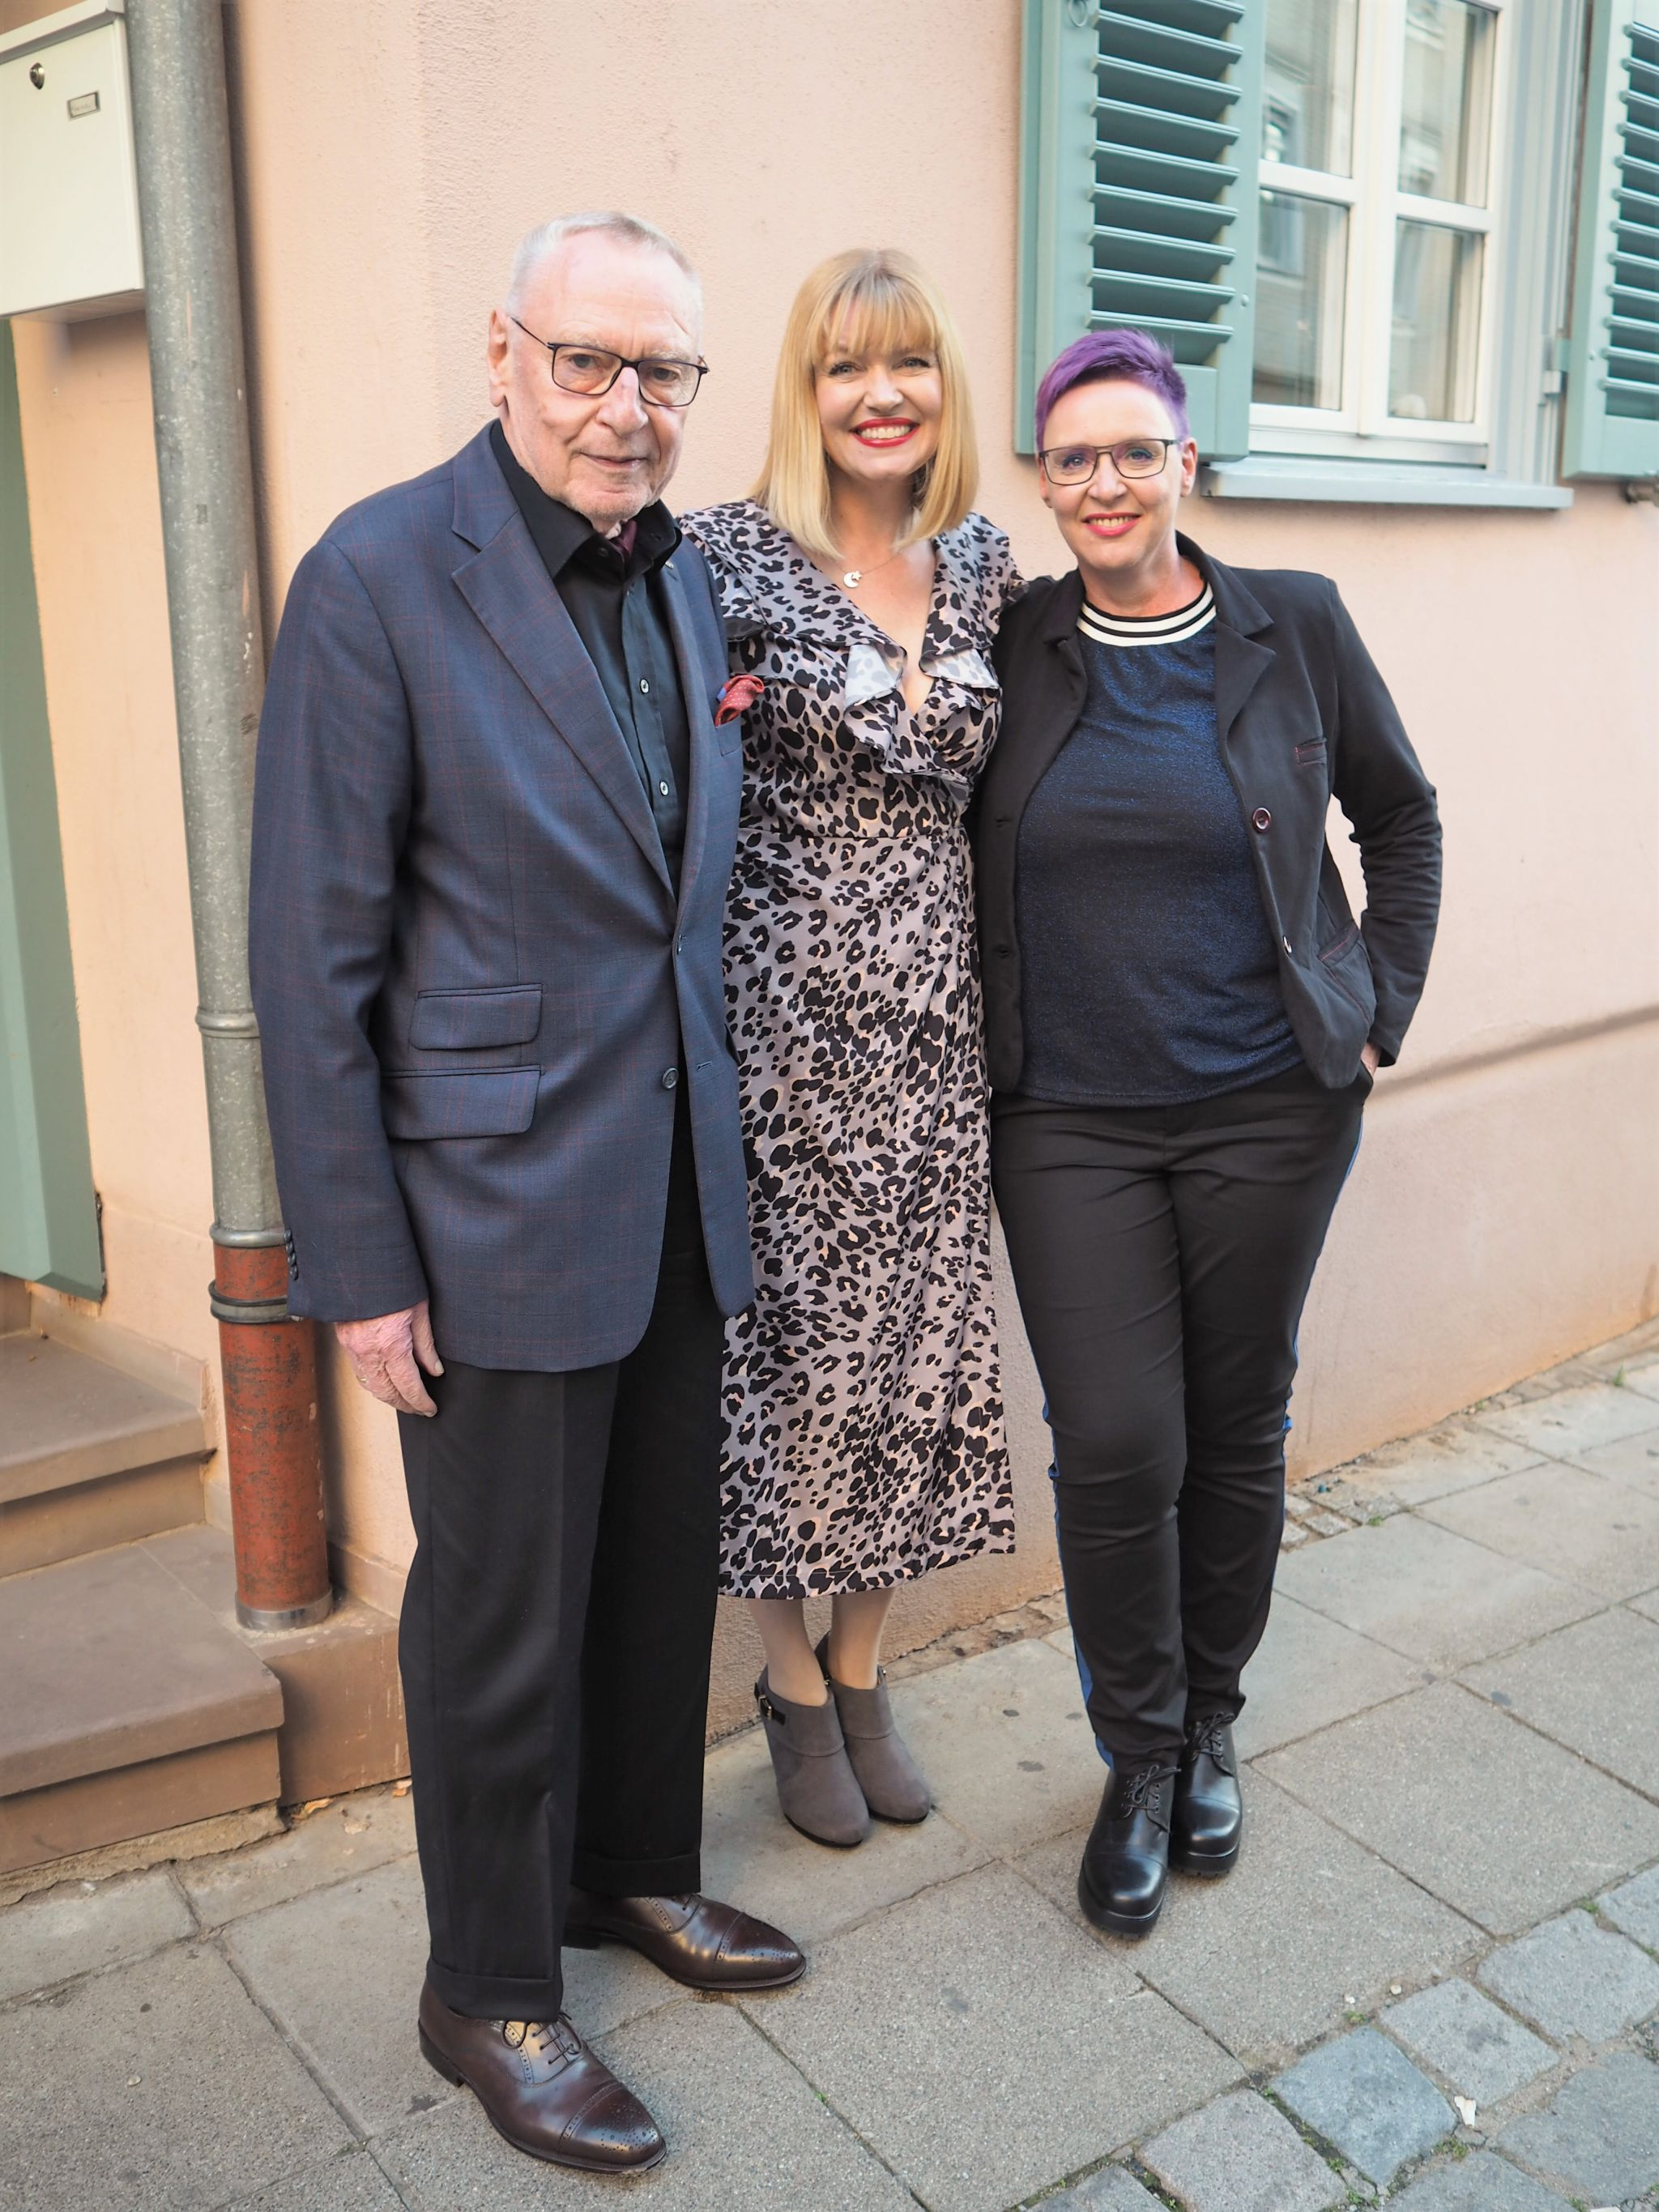 Lizzy with Hans and Saska Stepper